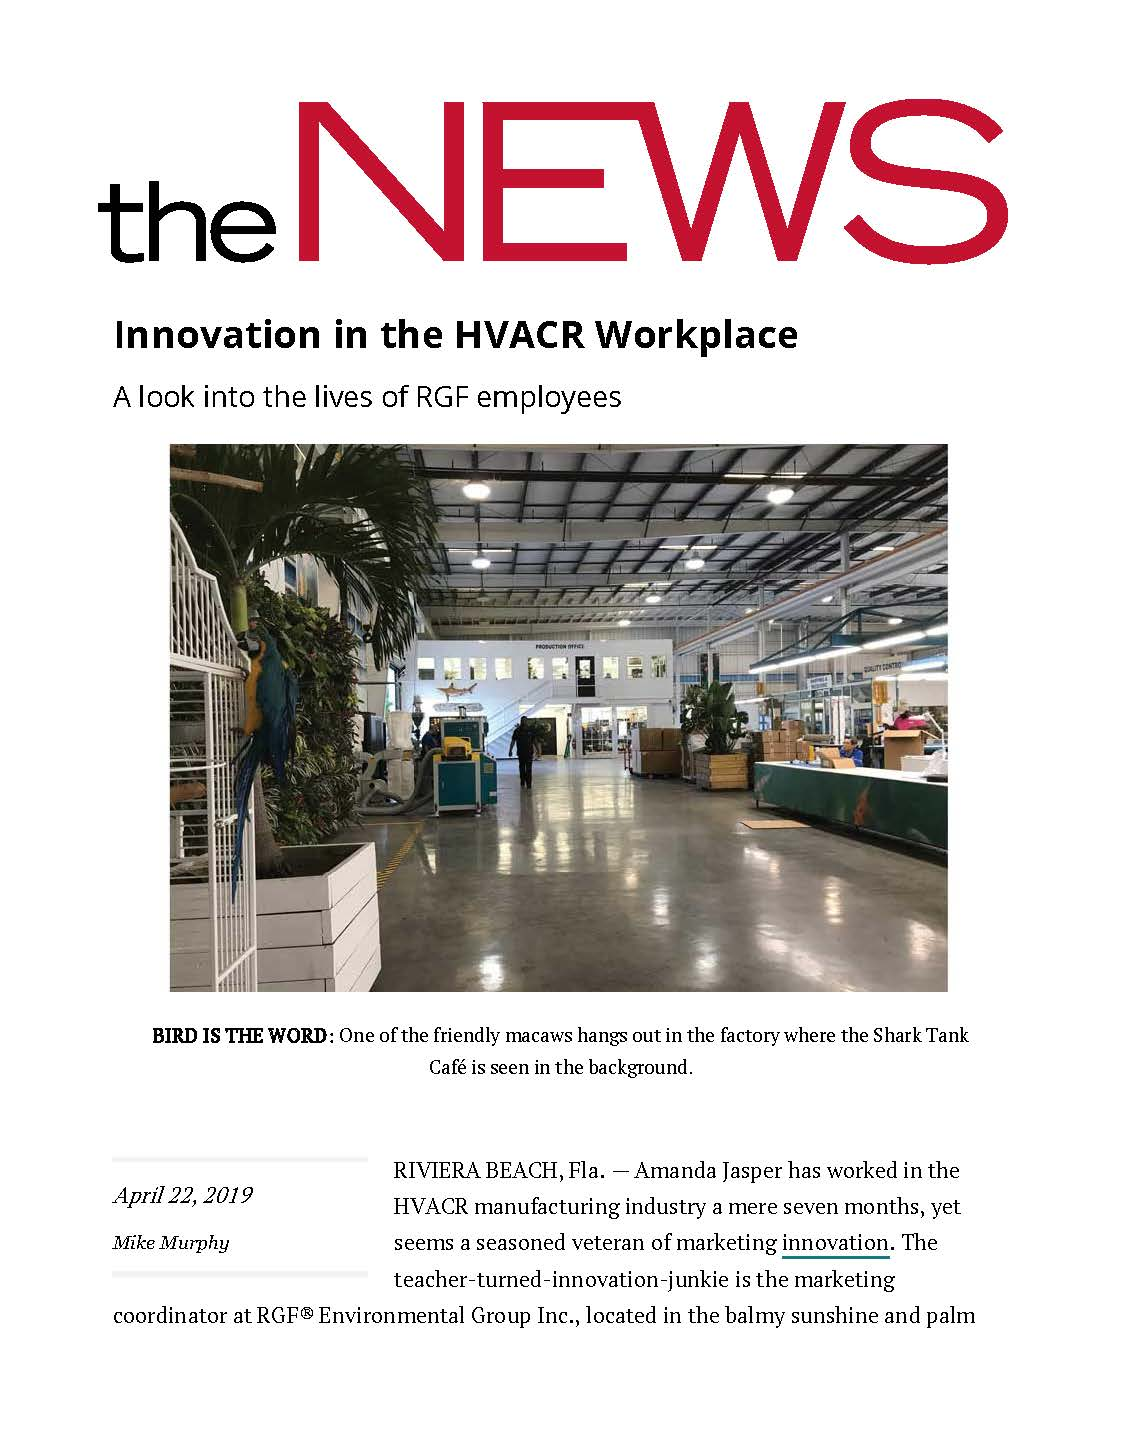 Innovation in the HVACR Workplace ACHR News